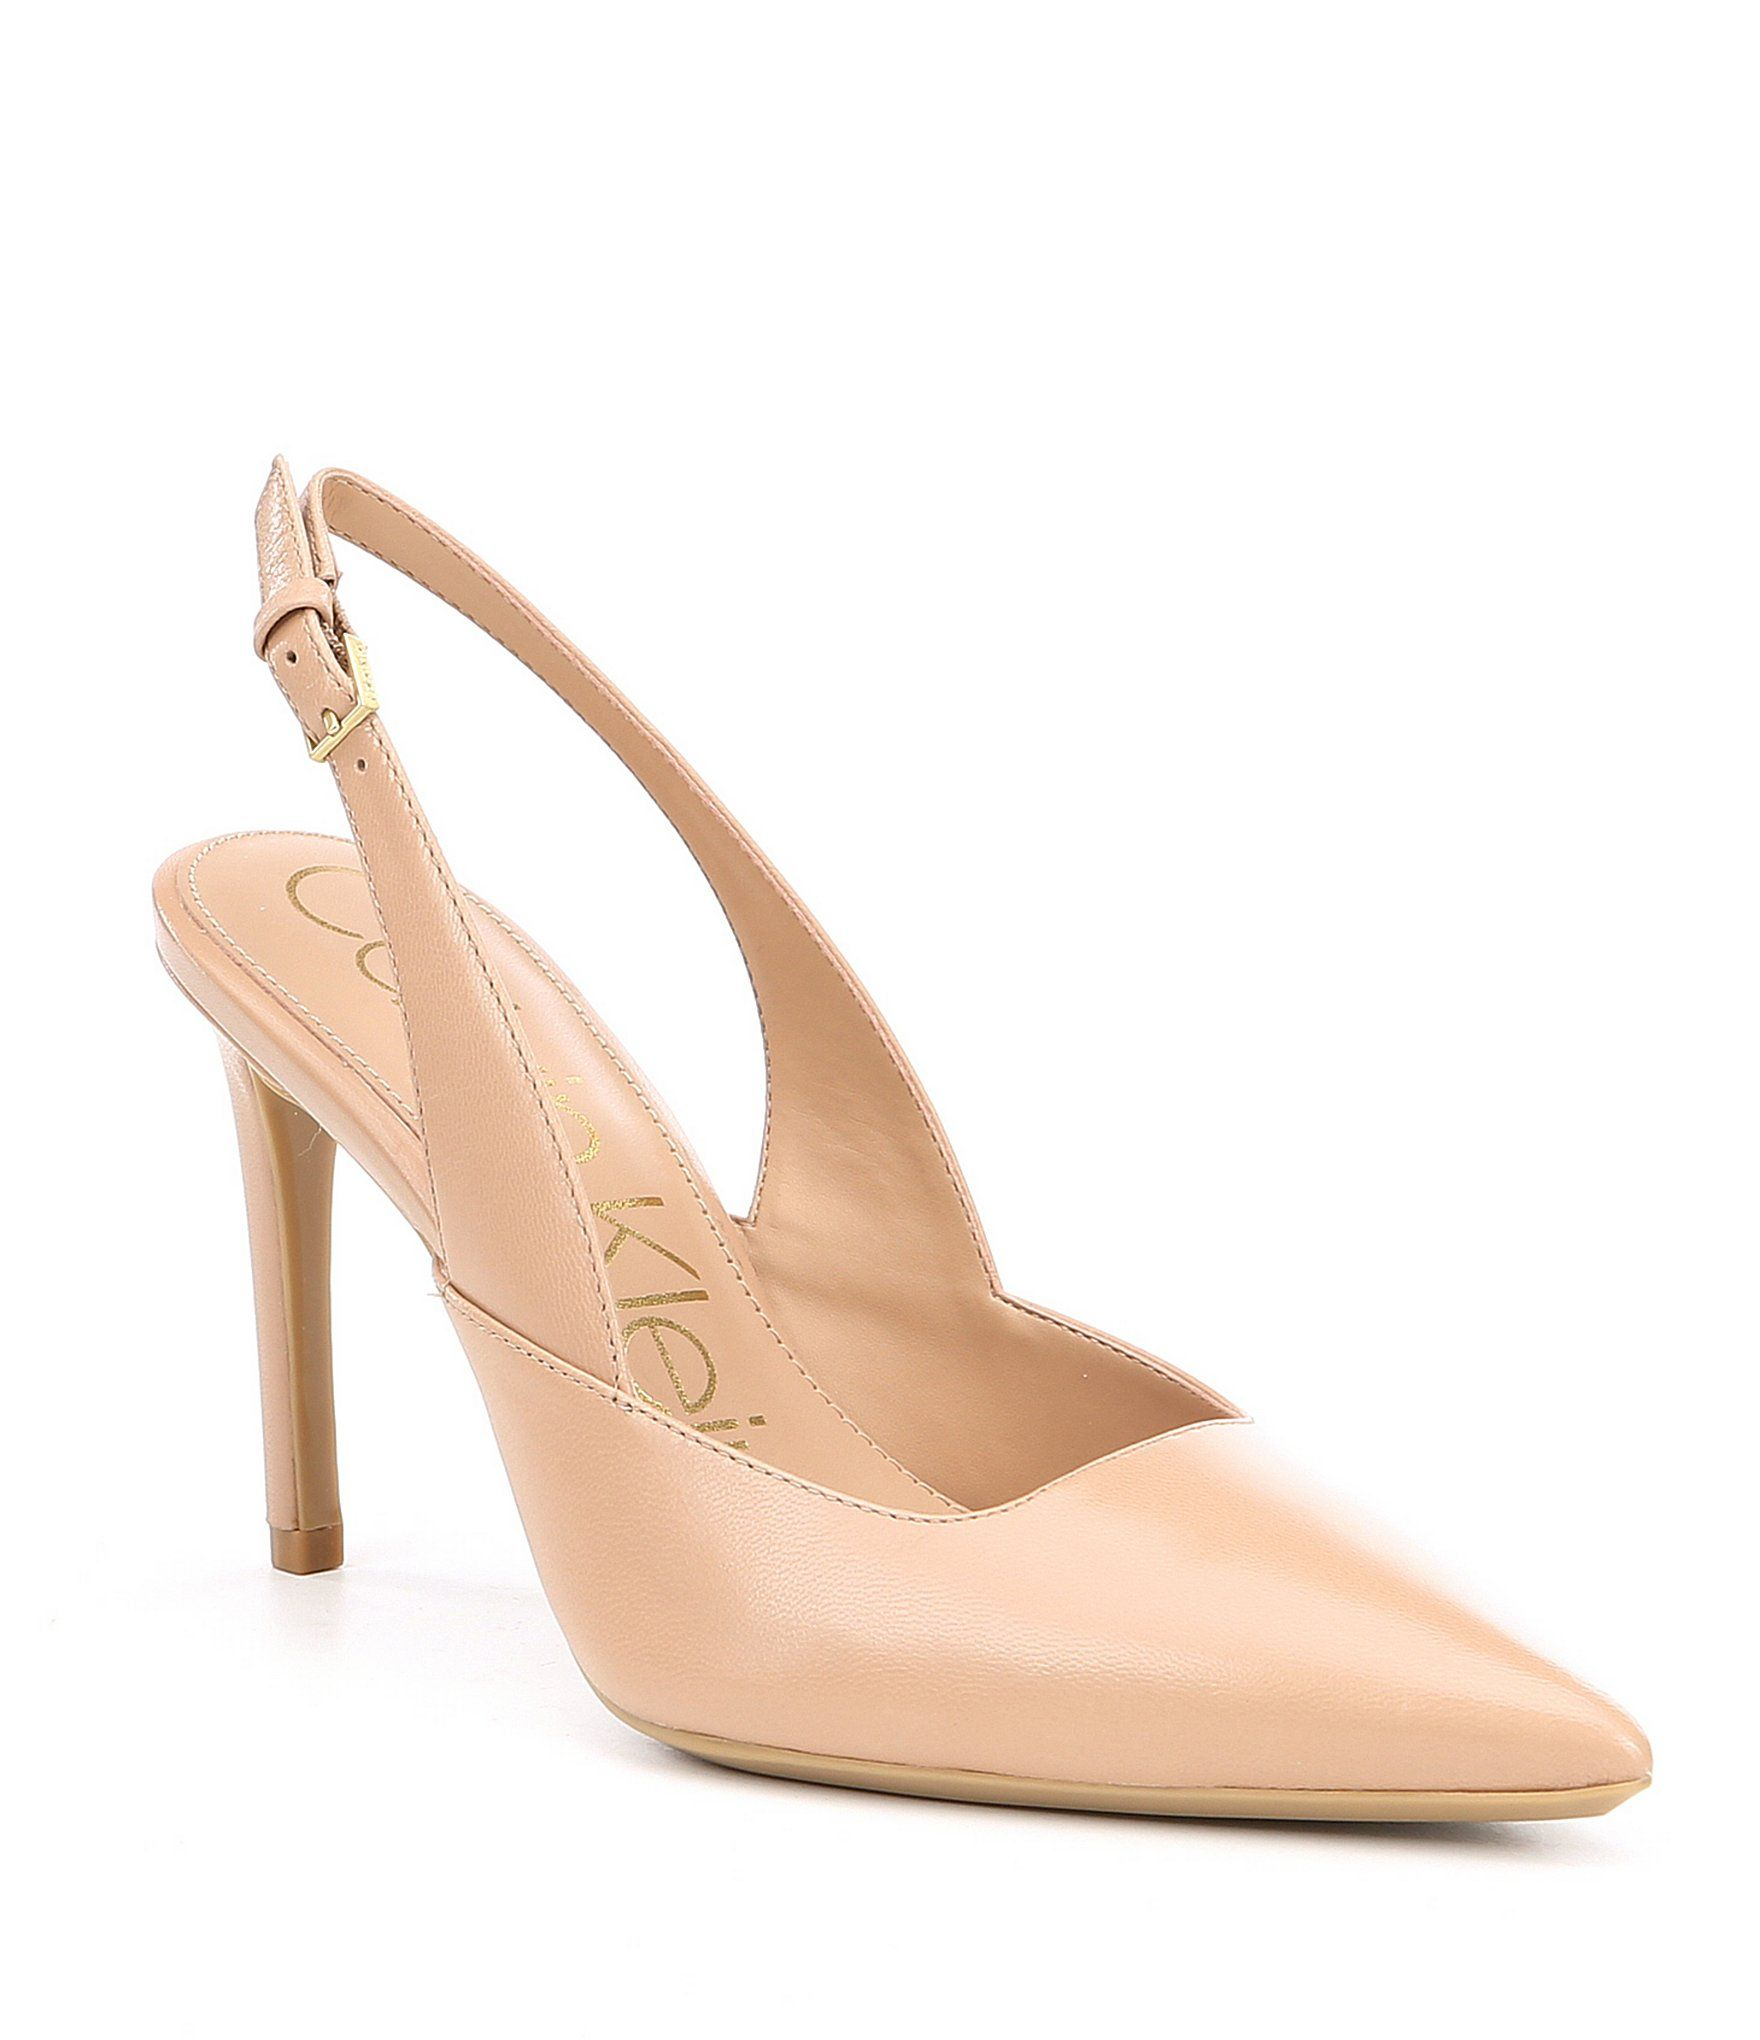 f864337d57a Calvin Klein Rielle Leather Slingback Dress Pumps in 2019 | Fashions ...